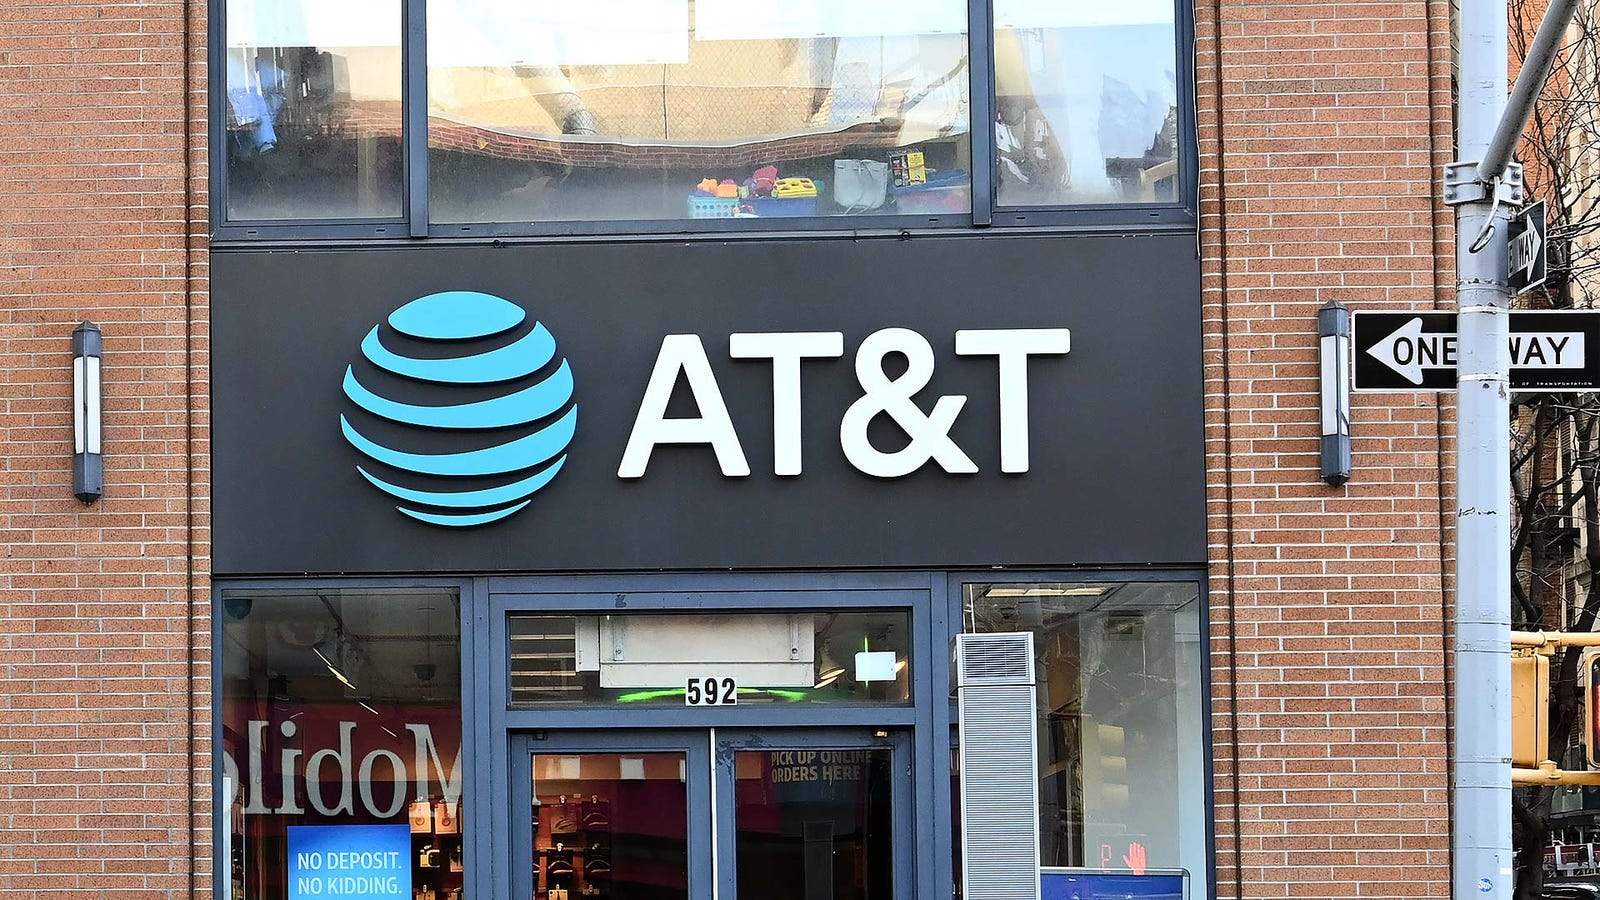 AT&T's Bogus '5G E' Service Loses in Speed Tests Against Other Networks